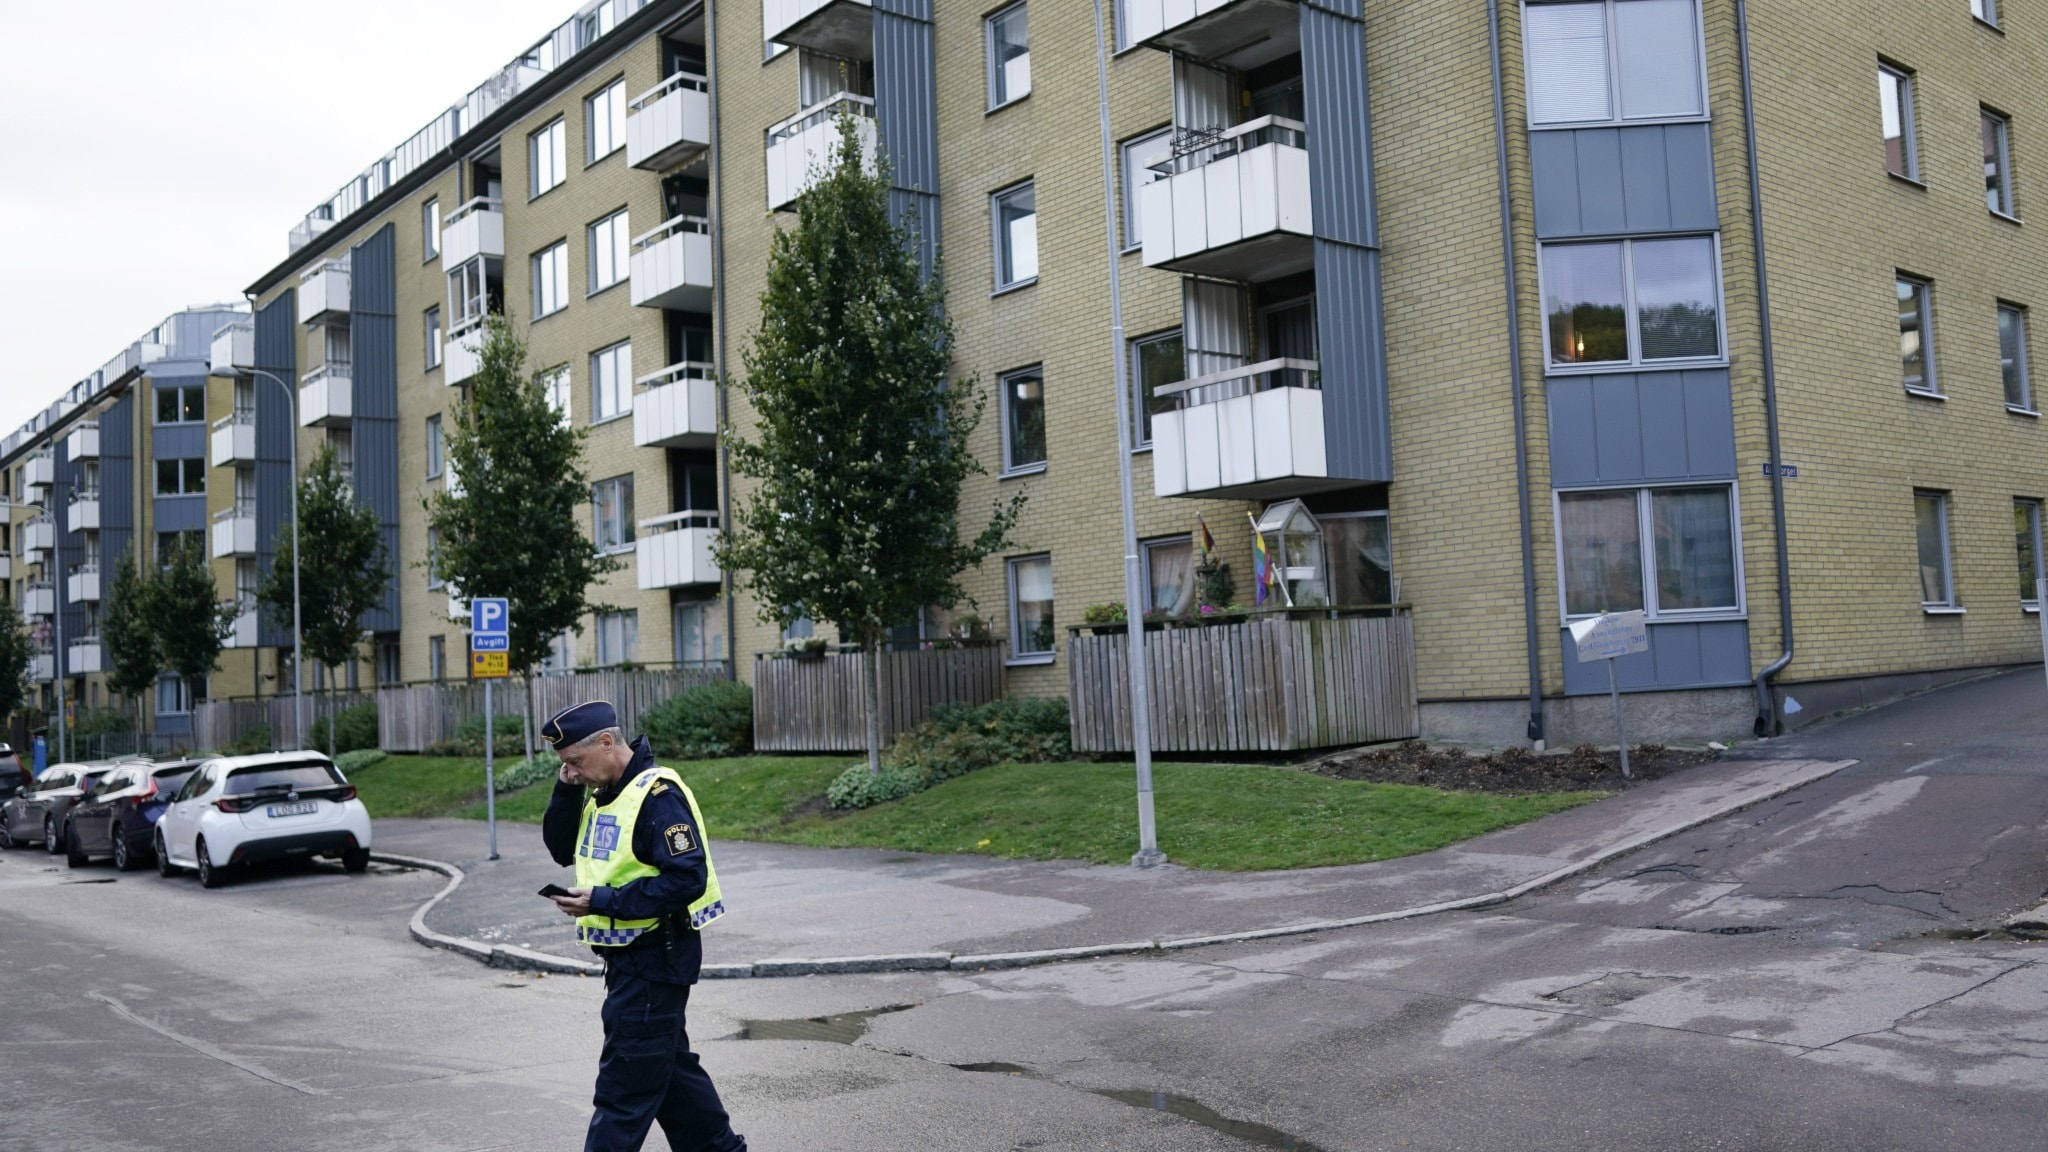 A policeman outside a block of flats in Annedal, Gothenburg.